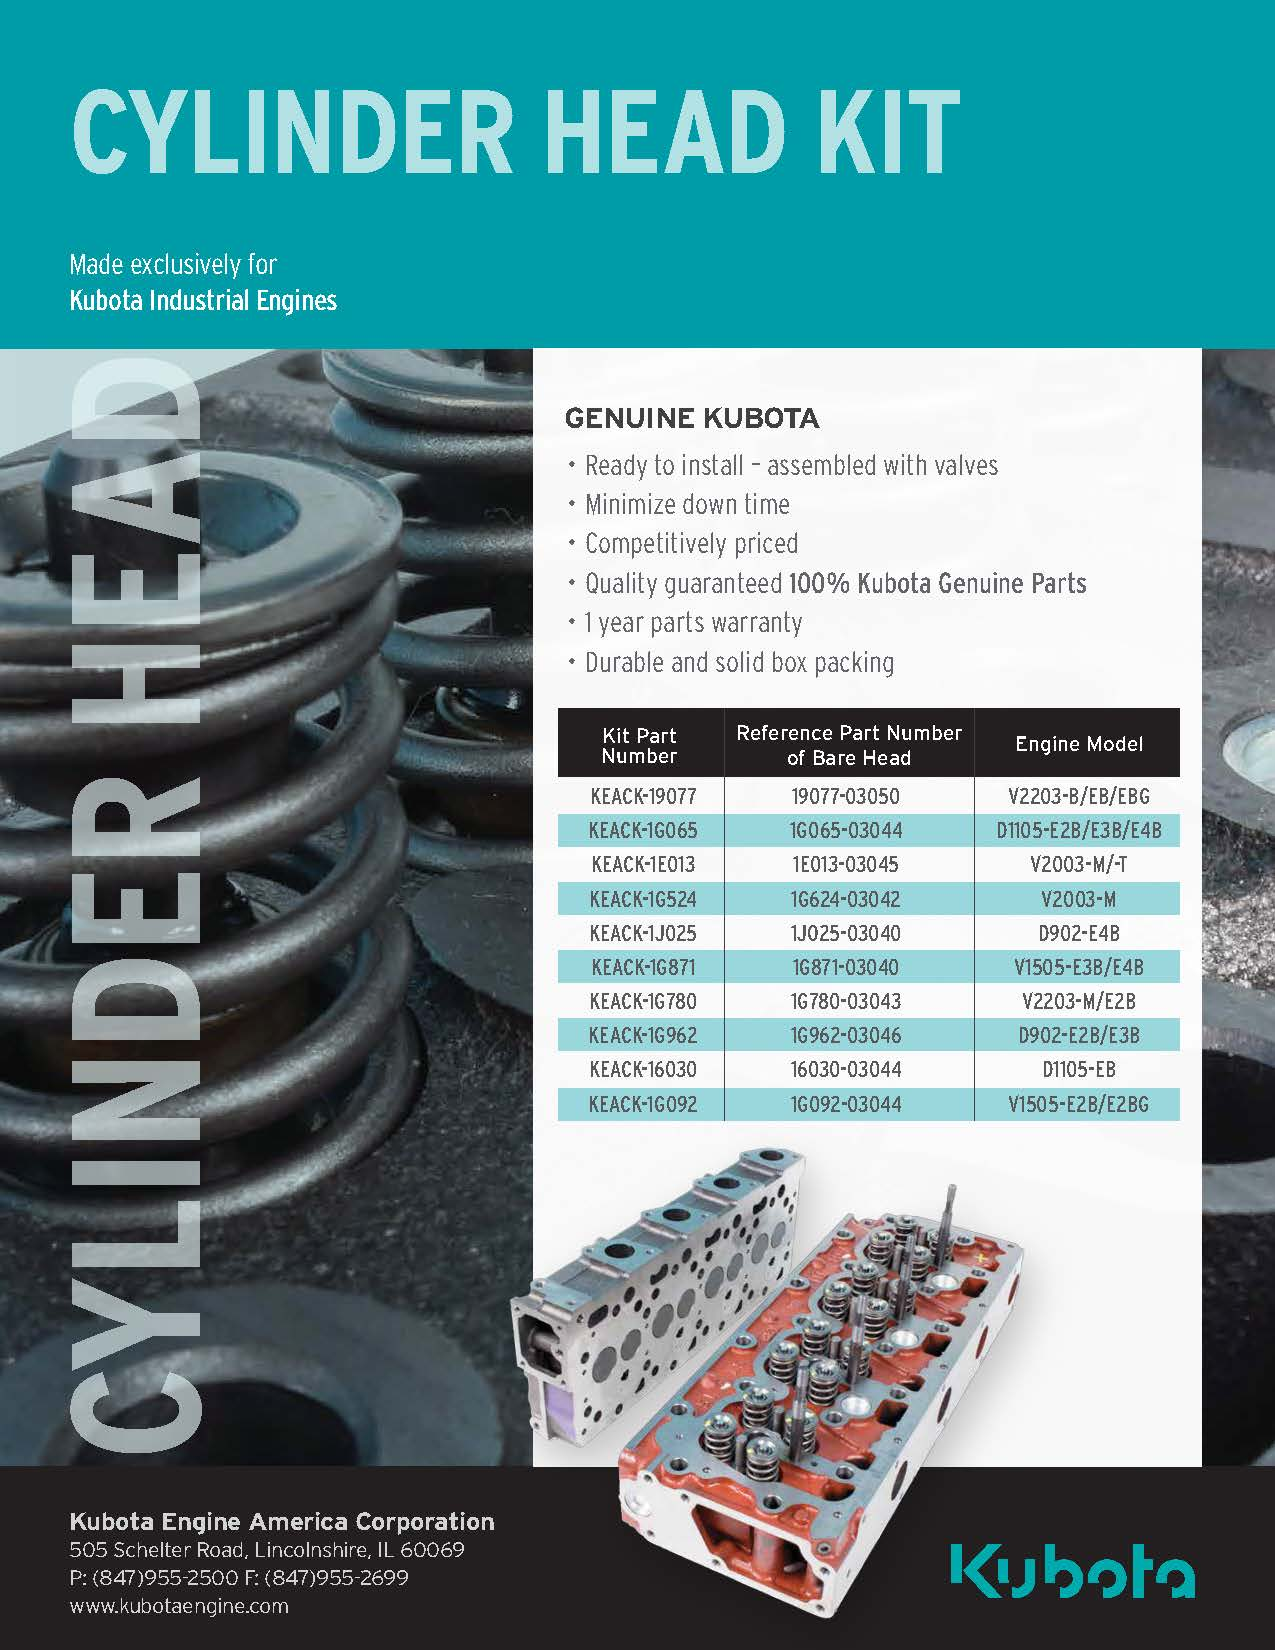 www capengco com | Industrial Engines and Accessories